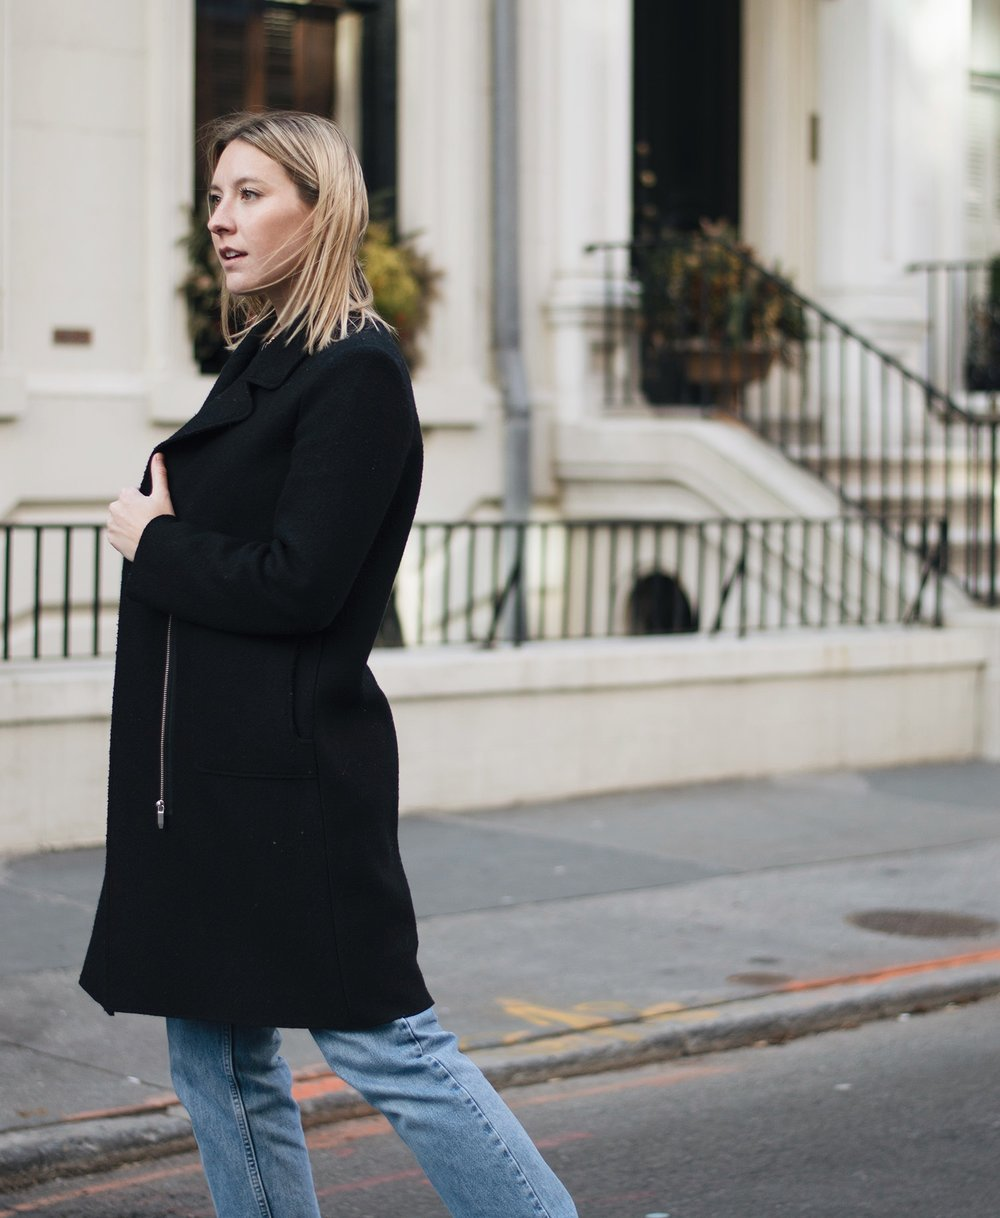 Zara Felt Coat (similar  here  +  here ), Vintage Denim (similar  here  +  here ),  J. Crew Perfect Fit Long Sleeve Tee ,  Dolce Vita Ankle Boots  ( on sale )